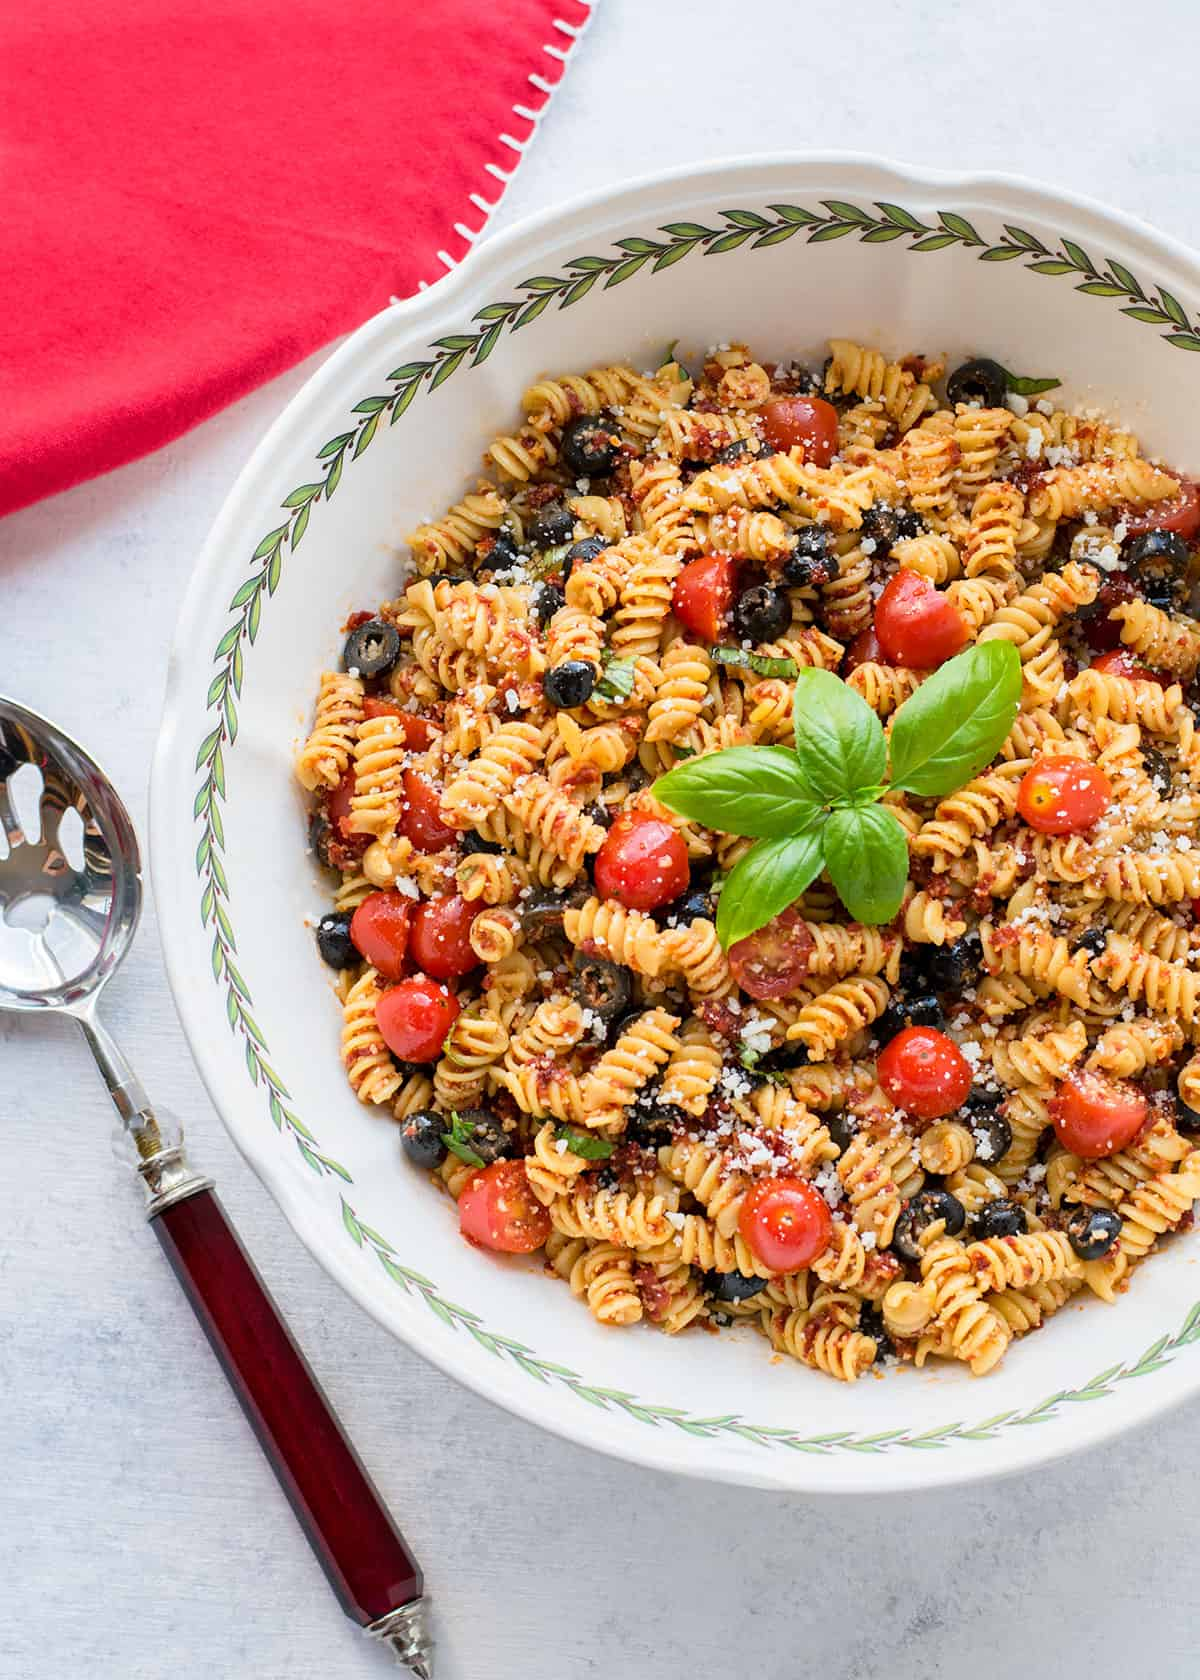 bowl of pasta salad with tomatoes, black olives, basil, Parmesan, serving spoon